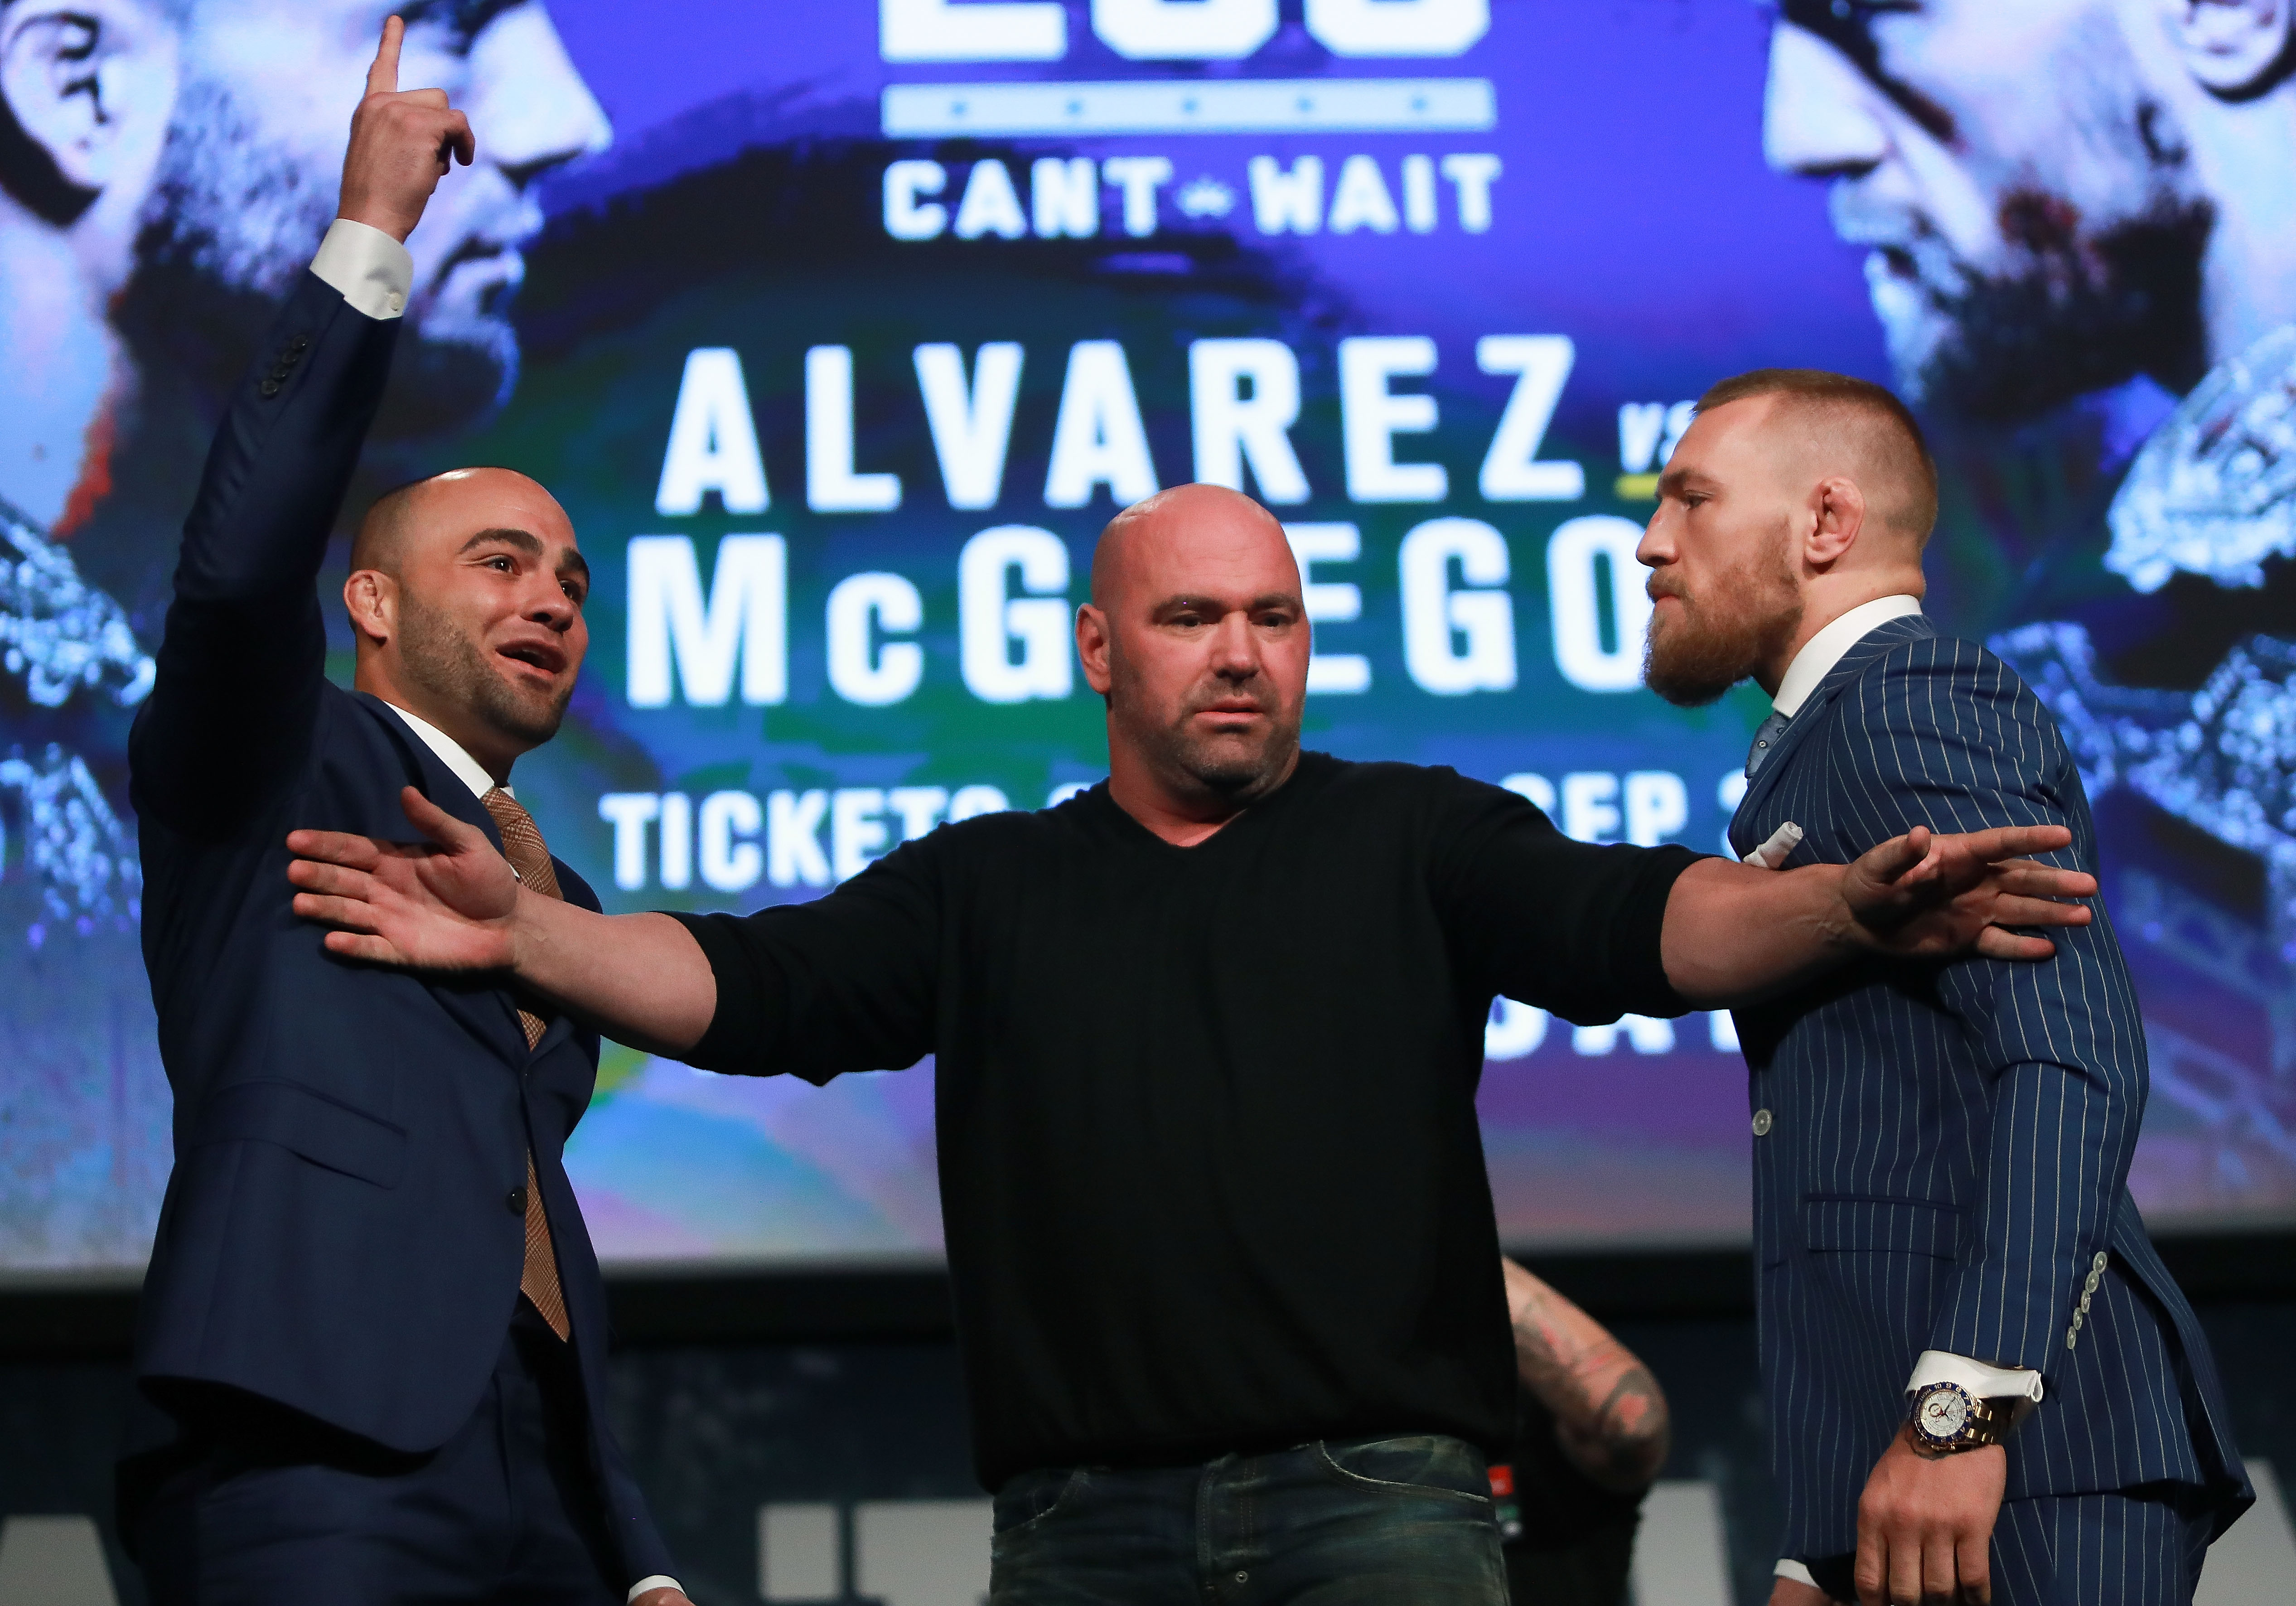 Conor McGregor and Eddie Alvarez face-off as UFC president Dana White breaks them up at the UFC 205 press conference at The Theater at Madison Square Garden on September 27, 2016 in New York City.  (Getty Images)